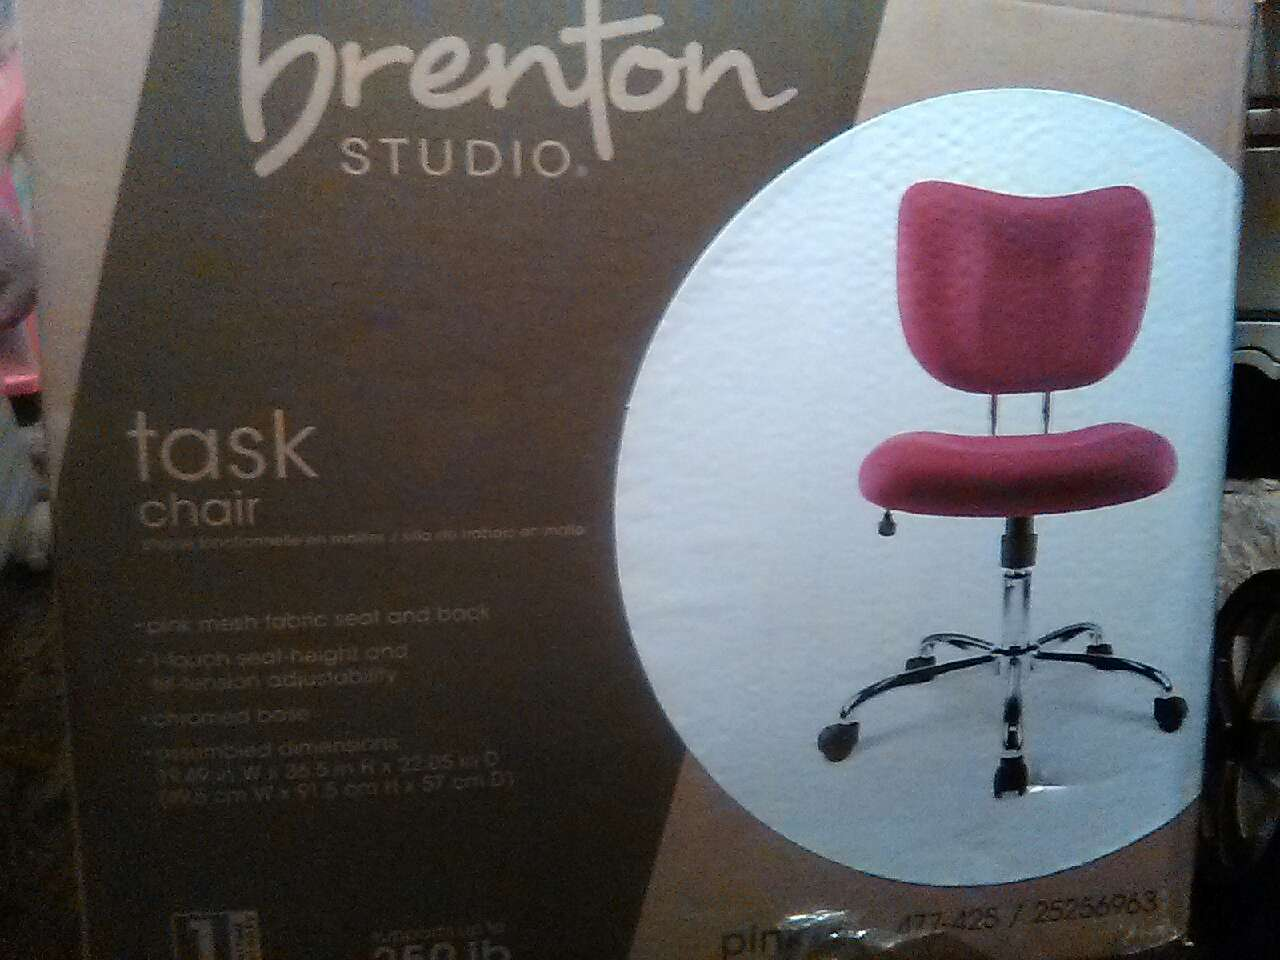 brenton studio task chair glass table and chairs letgo in lackland tx